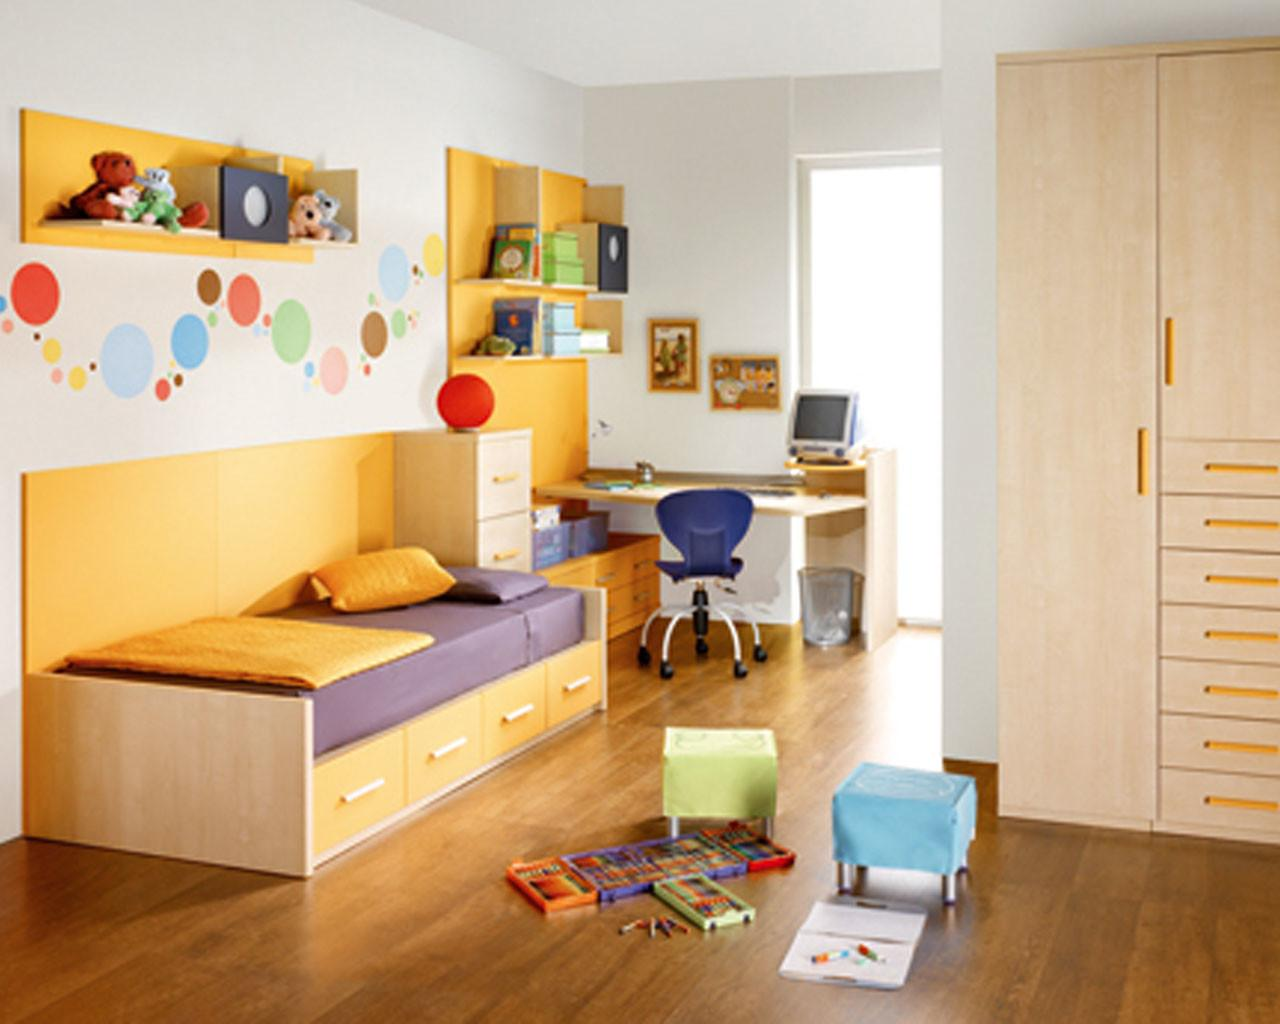 Kids Room Decor Design Ideas Easy Yet Effective